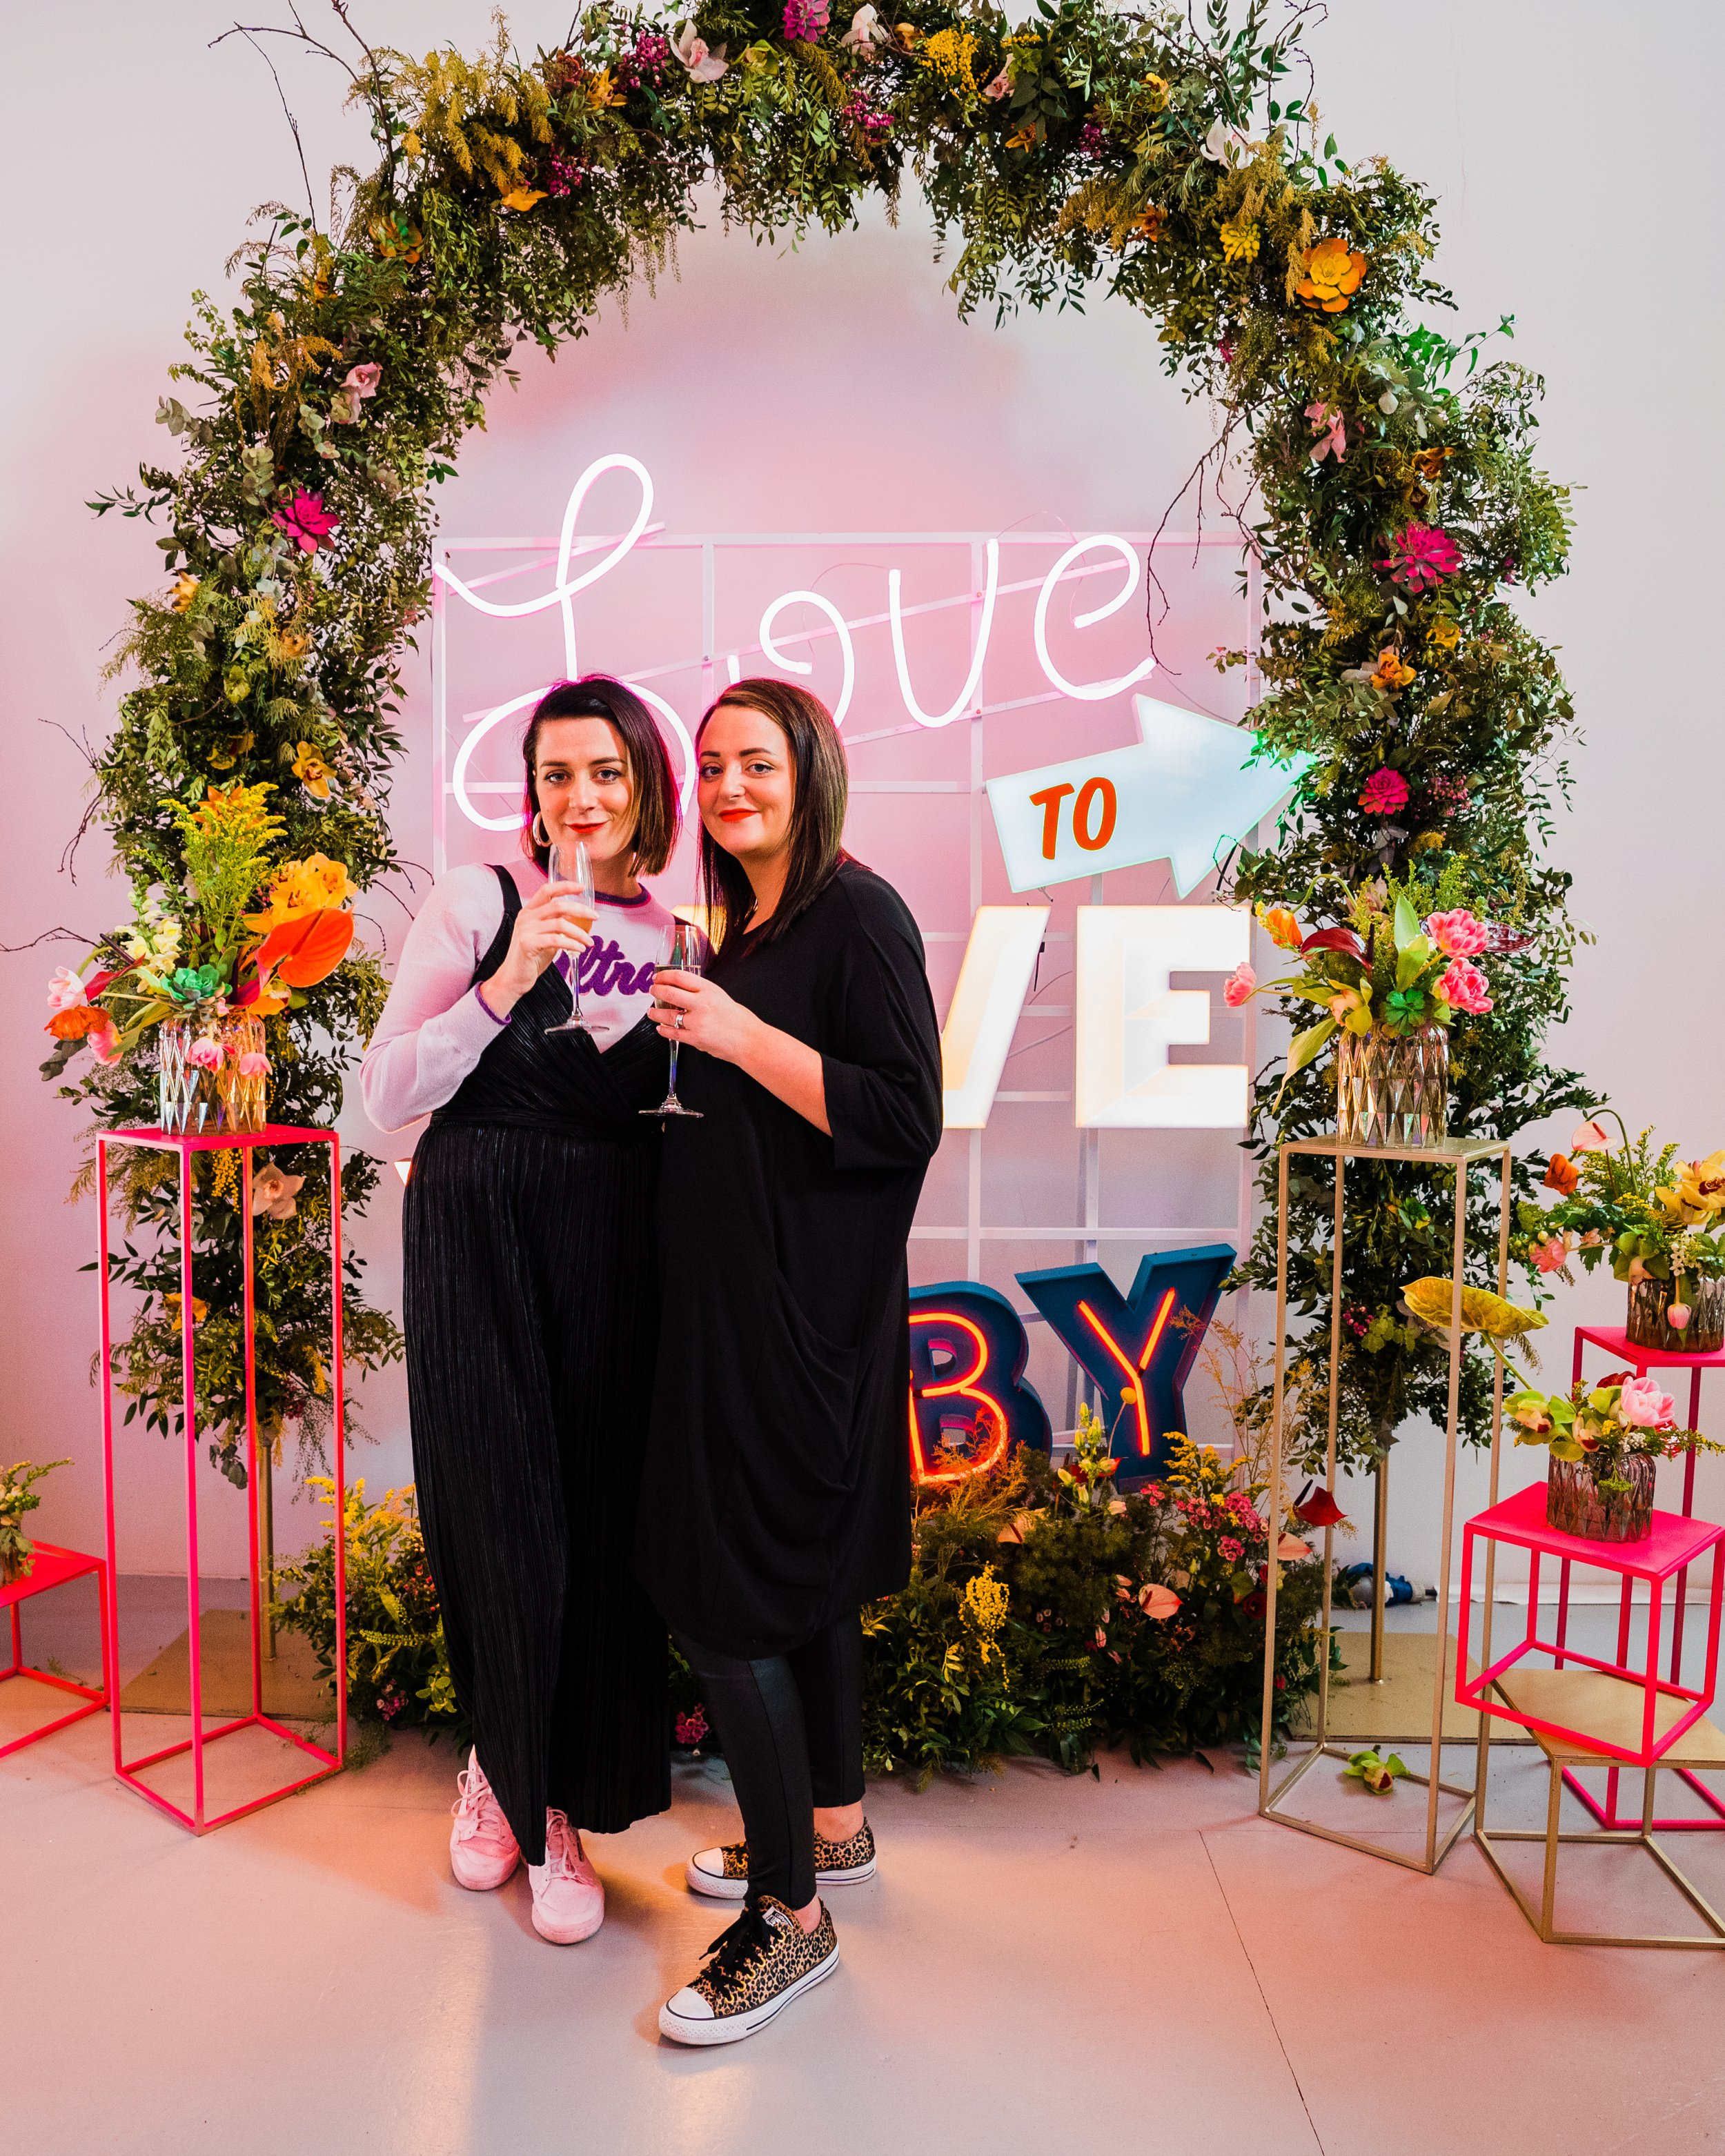 The UN-WEDDING SHOW dream team Melissa Woods (left) and sister Aisling